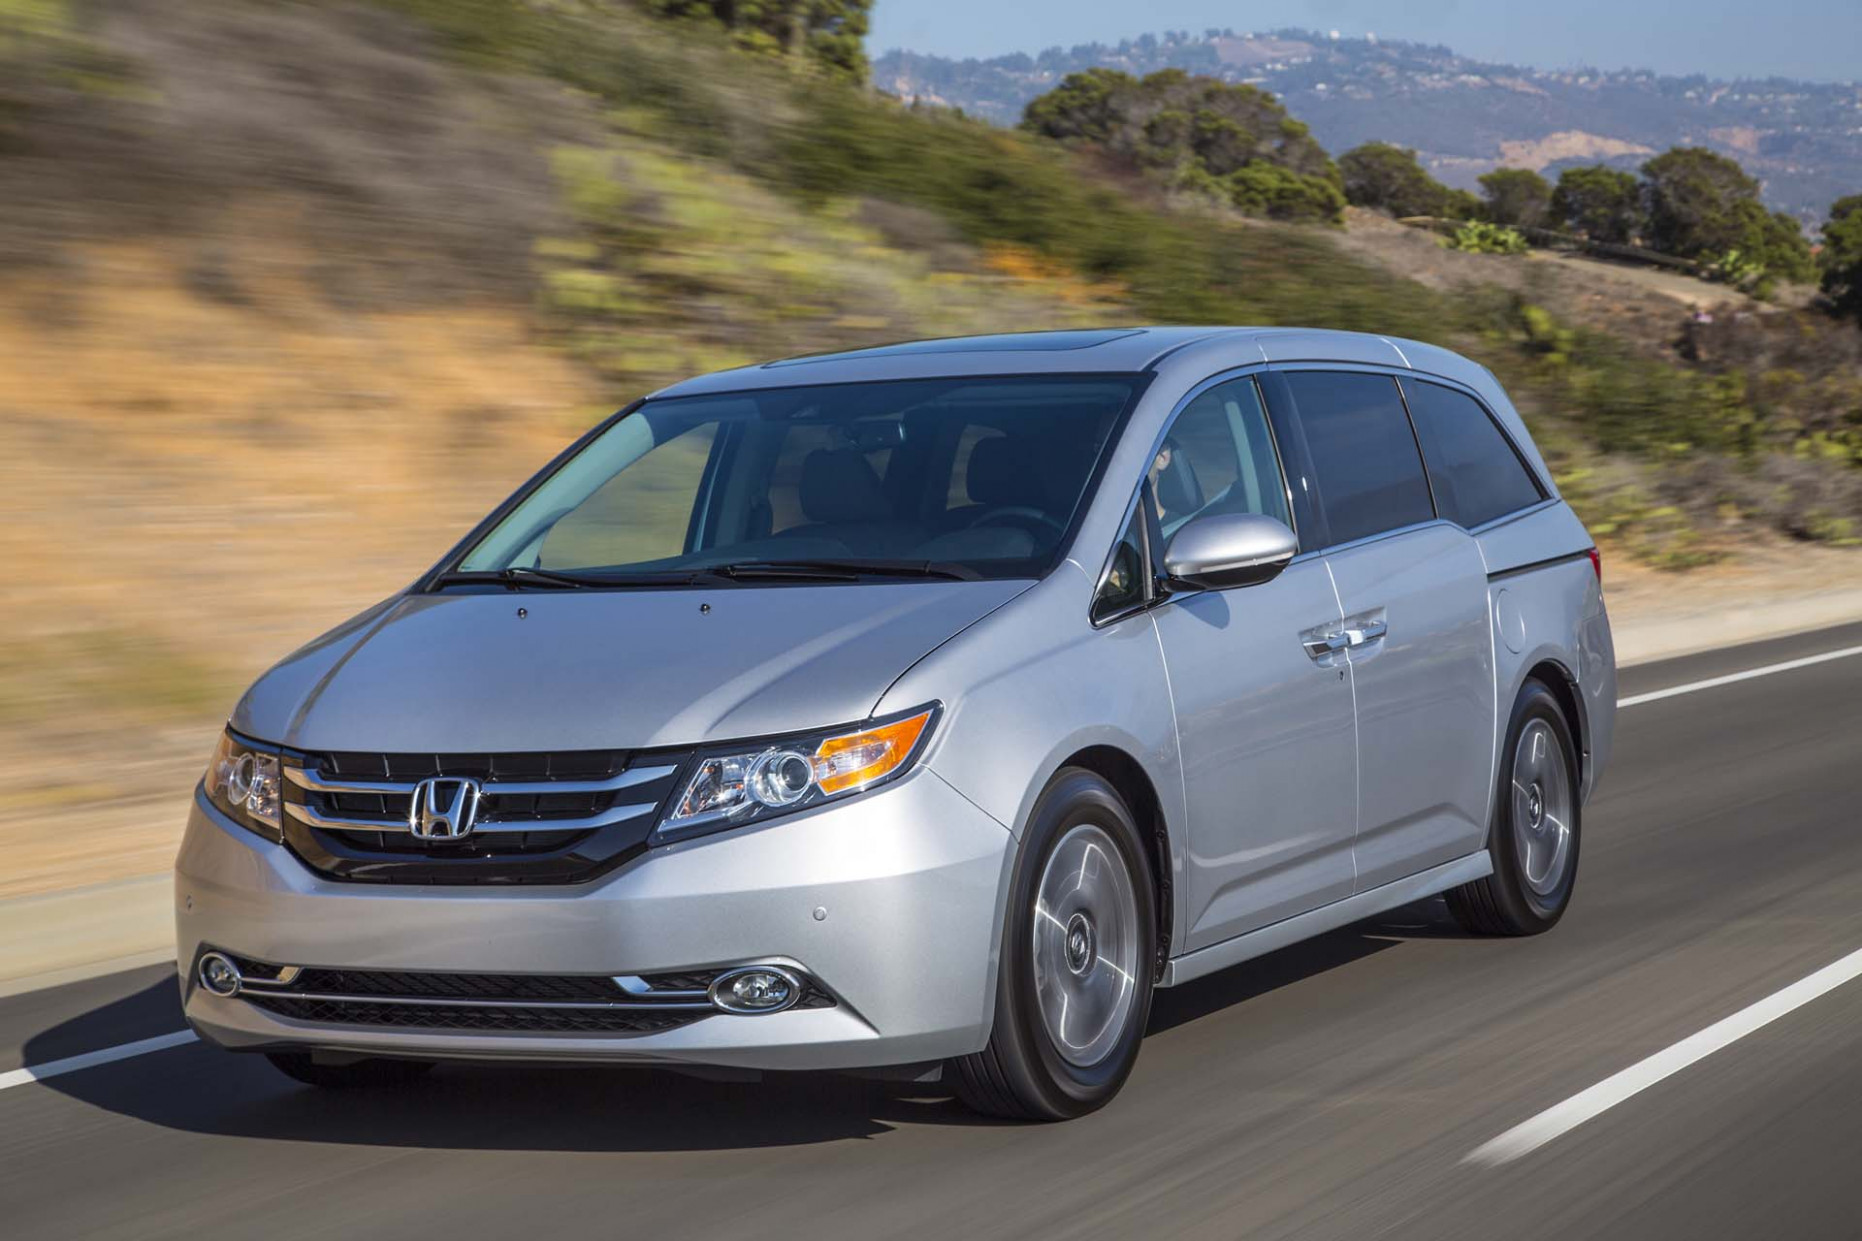 4 Honda Odyssey Review, Ratings, Specs, Prices, and Photos ..